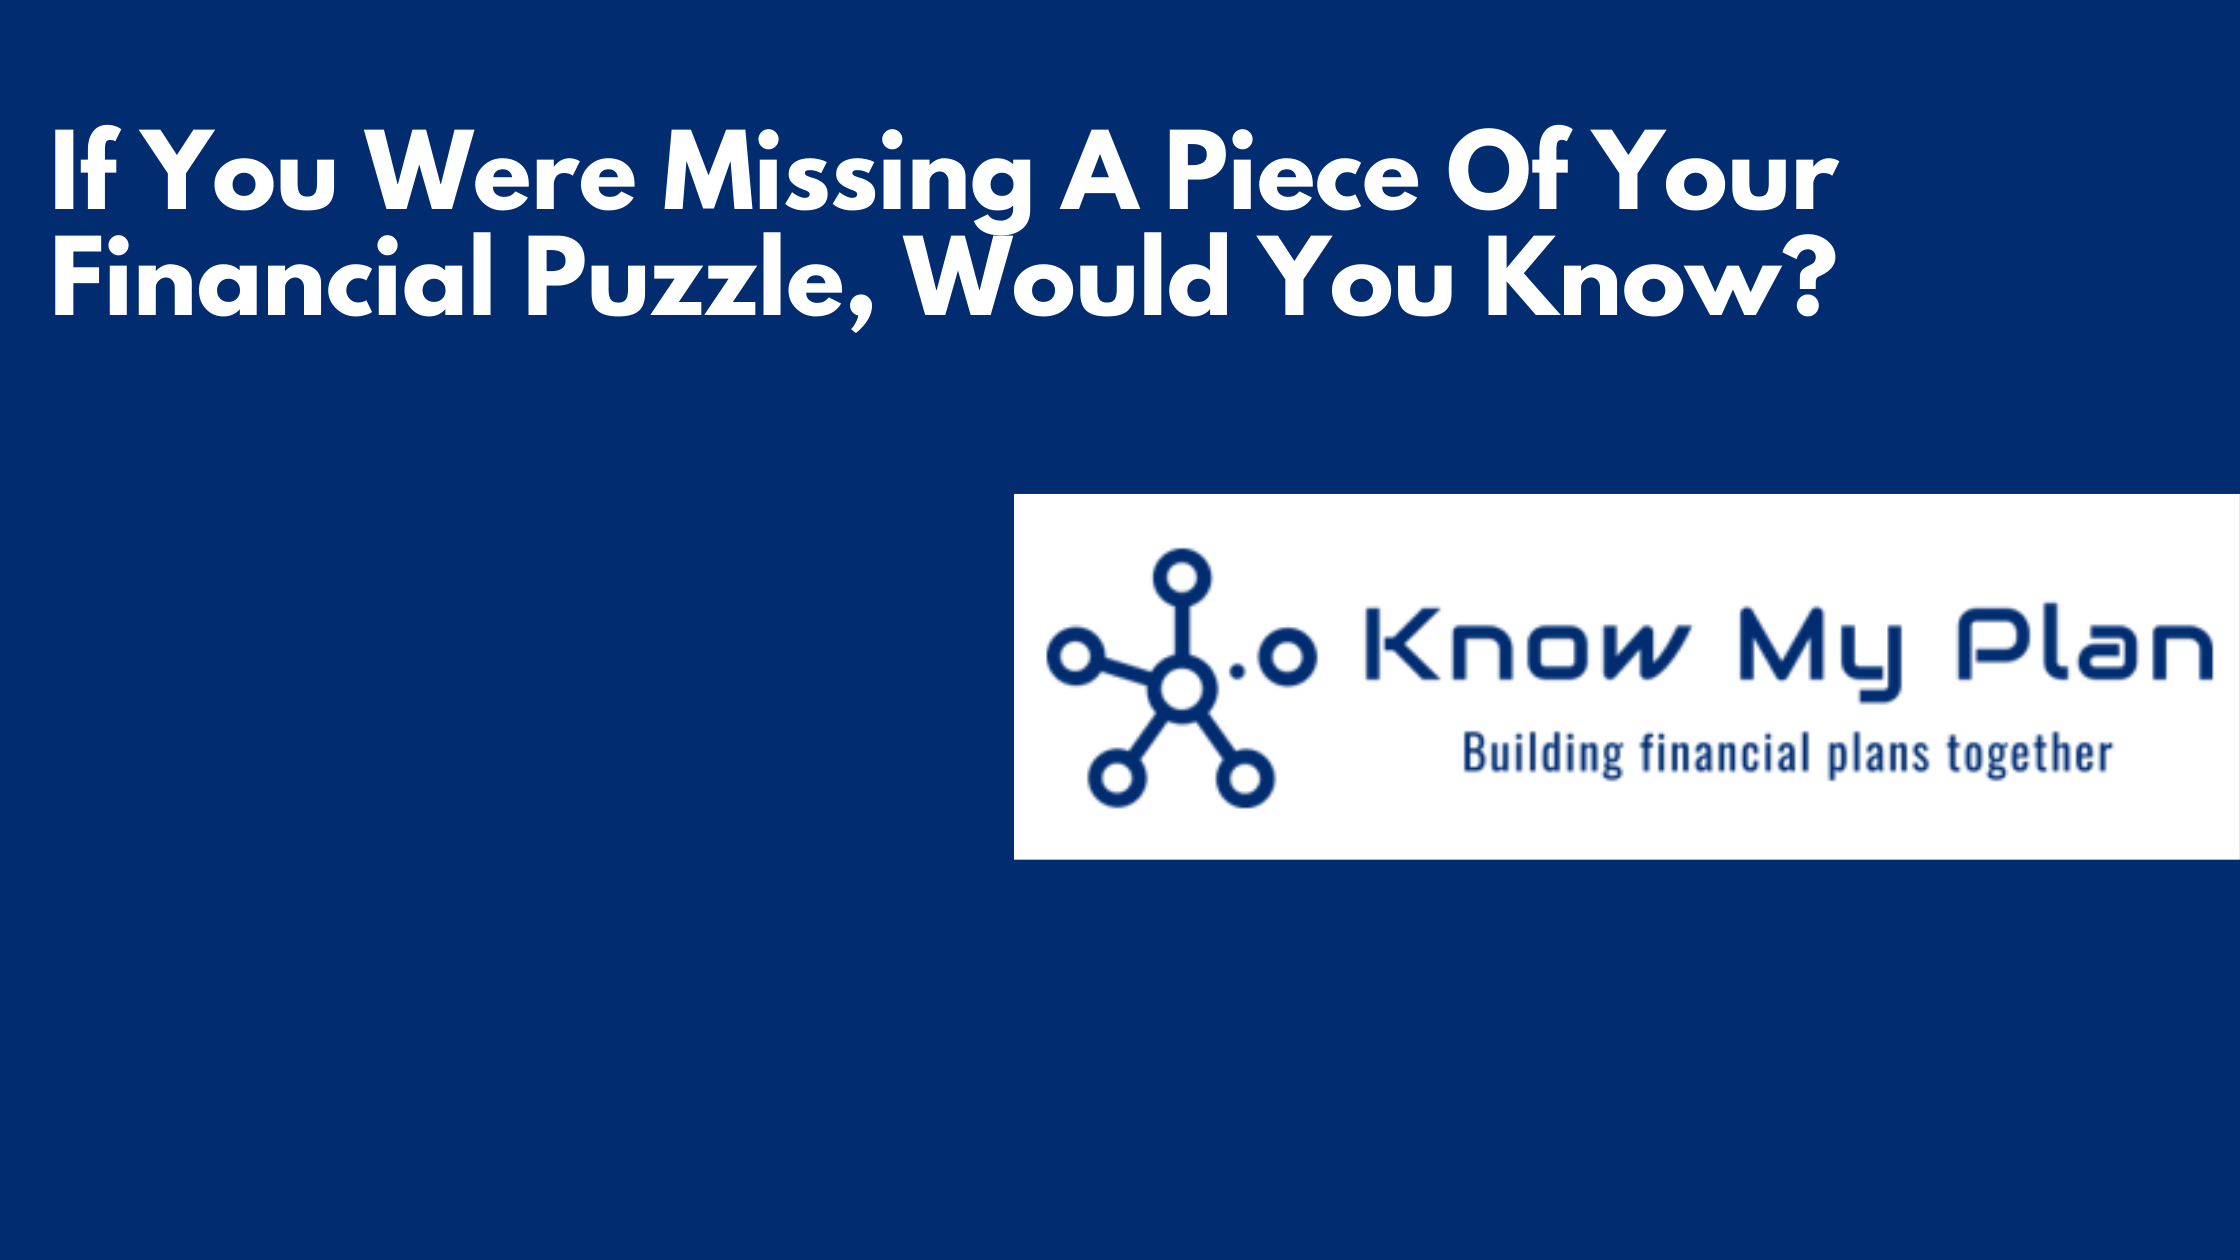 If You Were Missing A Piece Of Your Financial Puzzle, Would You Know? Thumbnail